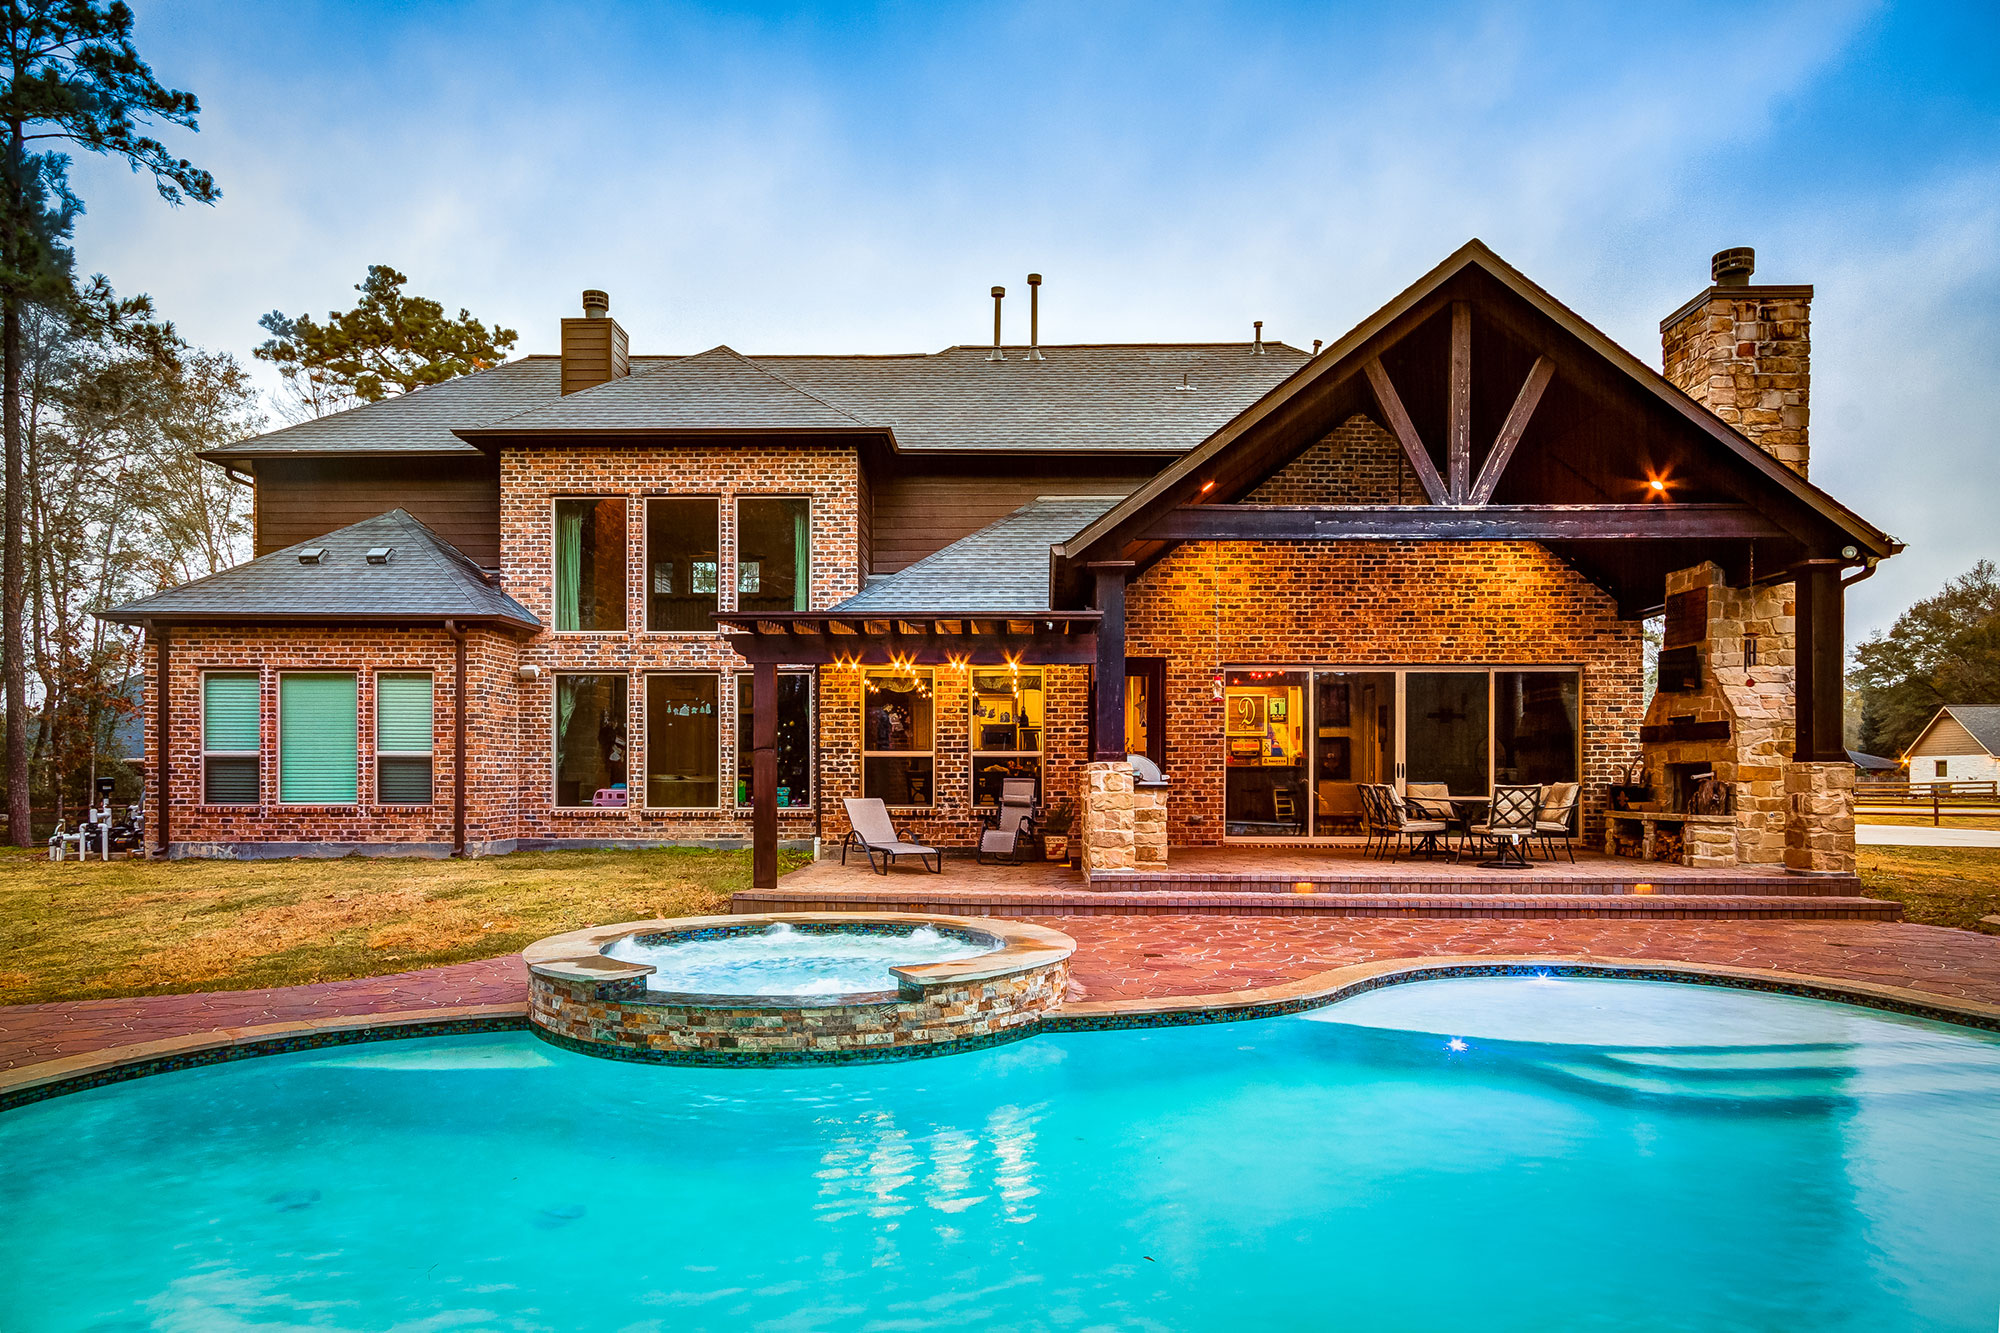 New Pool Construction: What to Ask Your Houston Pool Builder, Creekstone Outdoor Living, Spring, TX